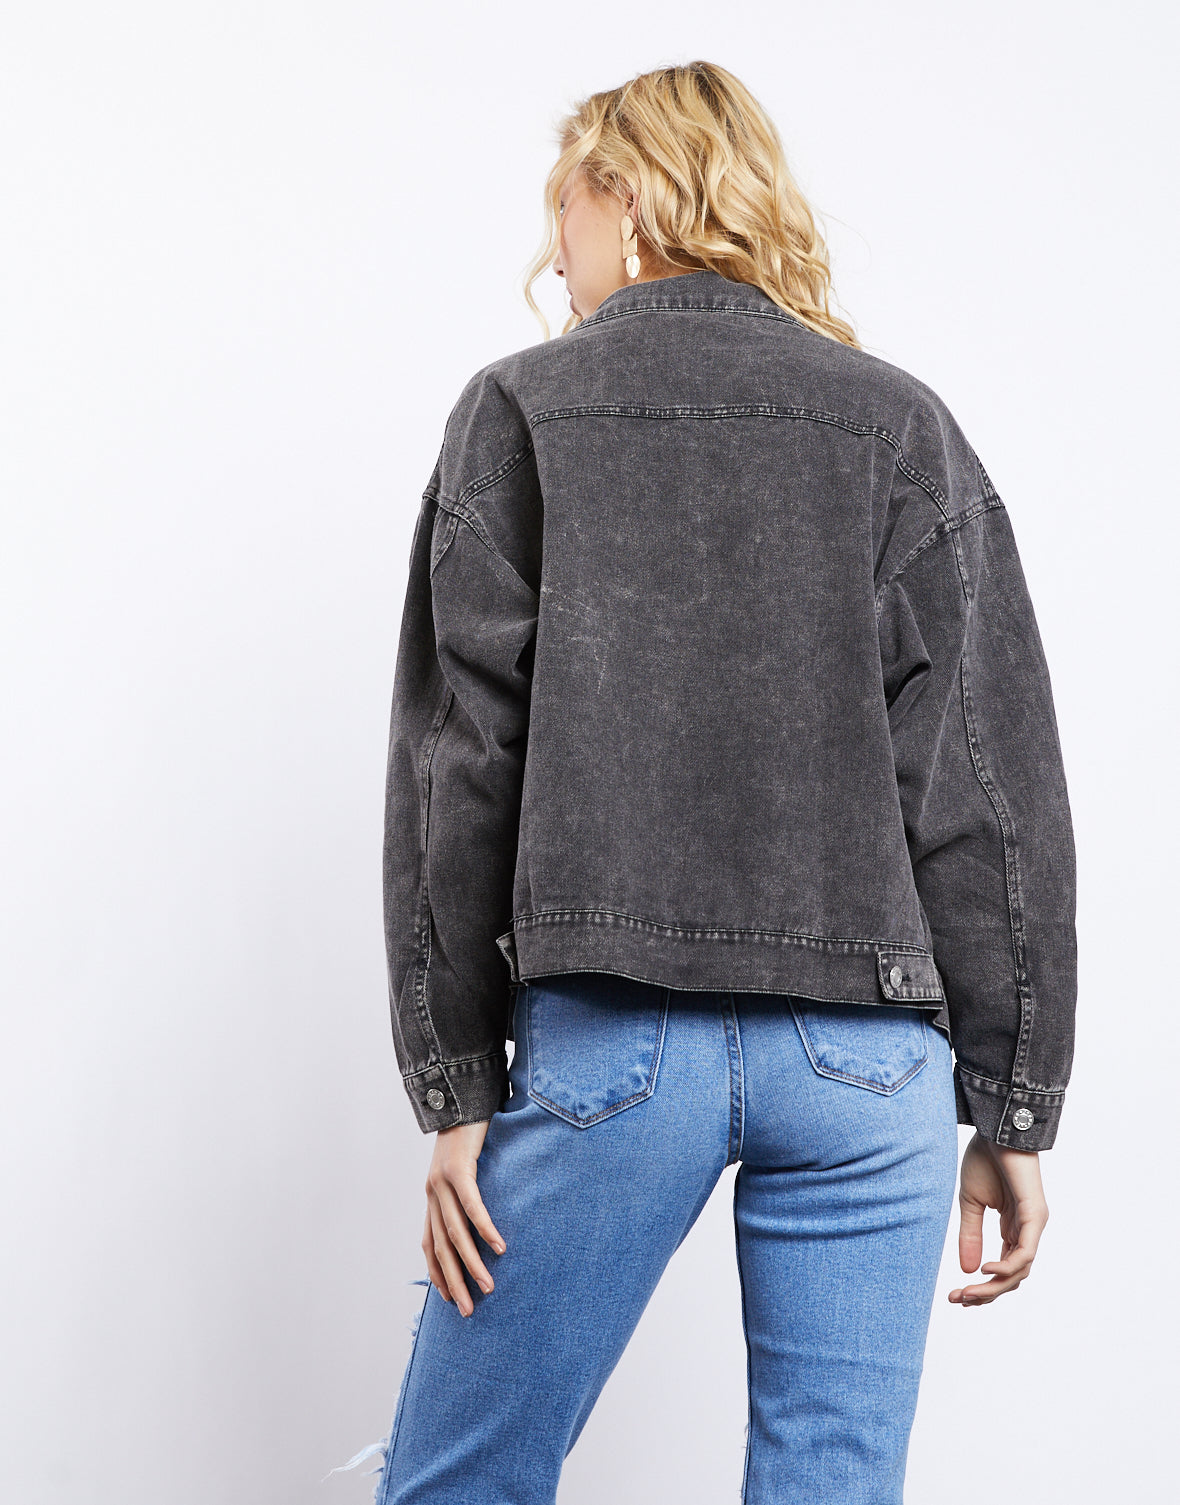 Chloe Worn Black Denim Jacket